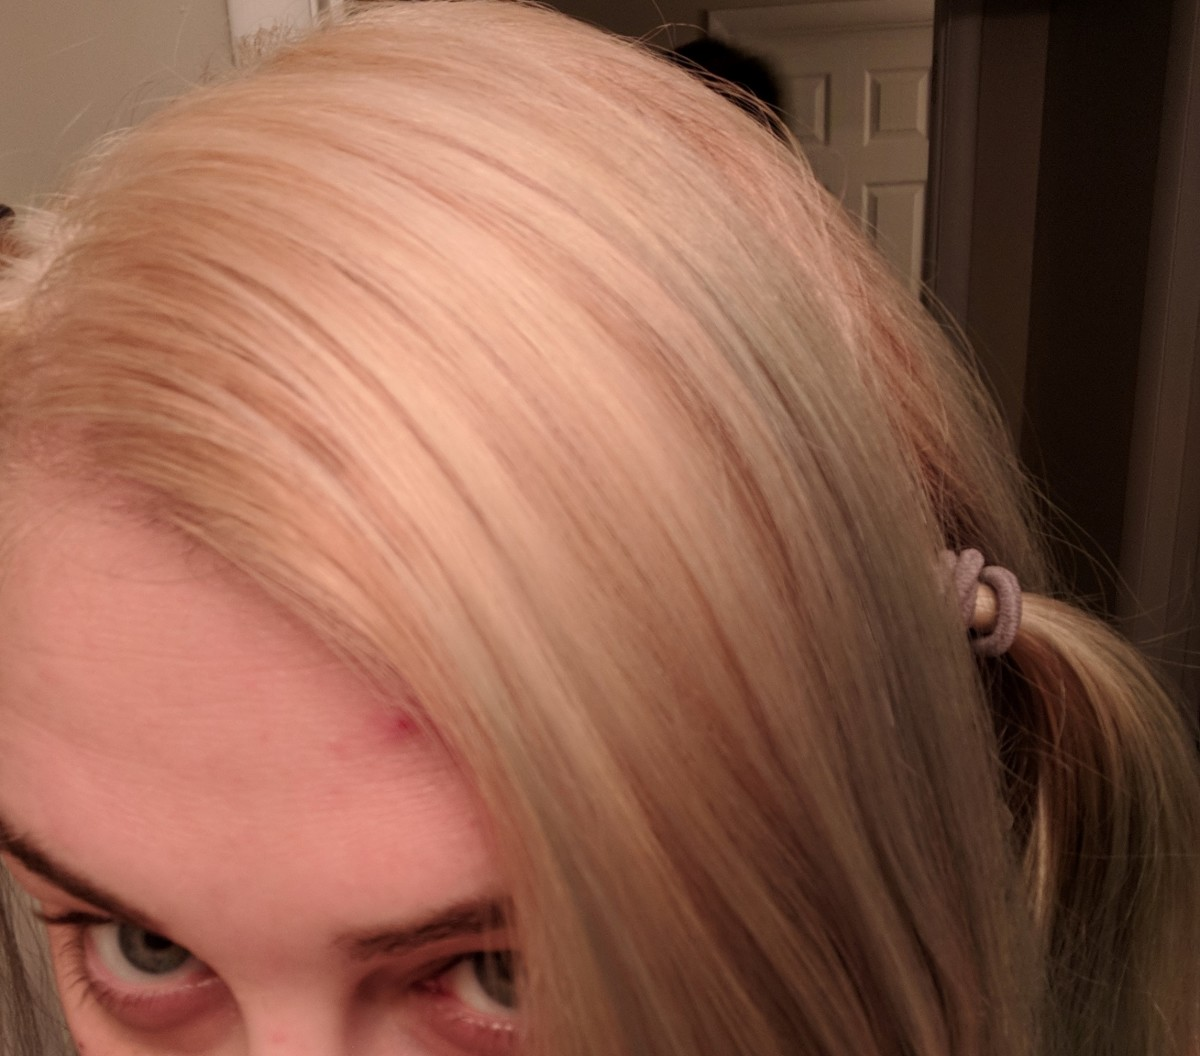 Here's my results after I lightened just my roots.